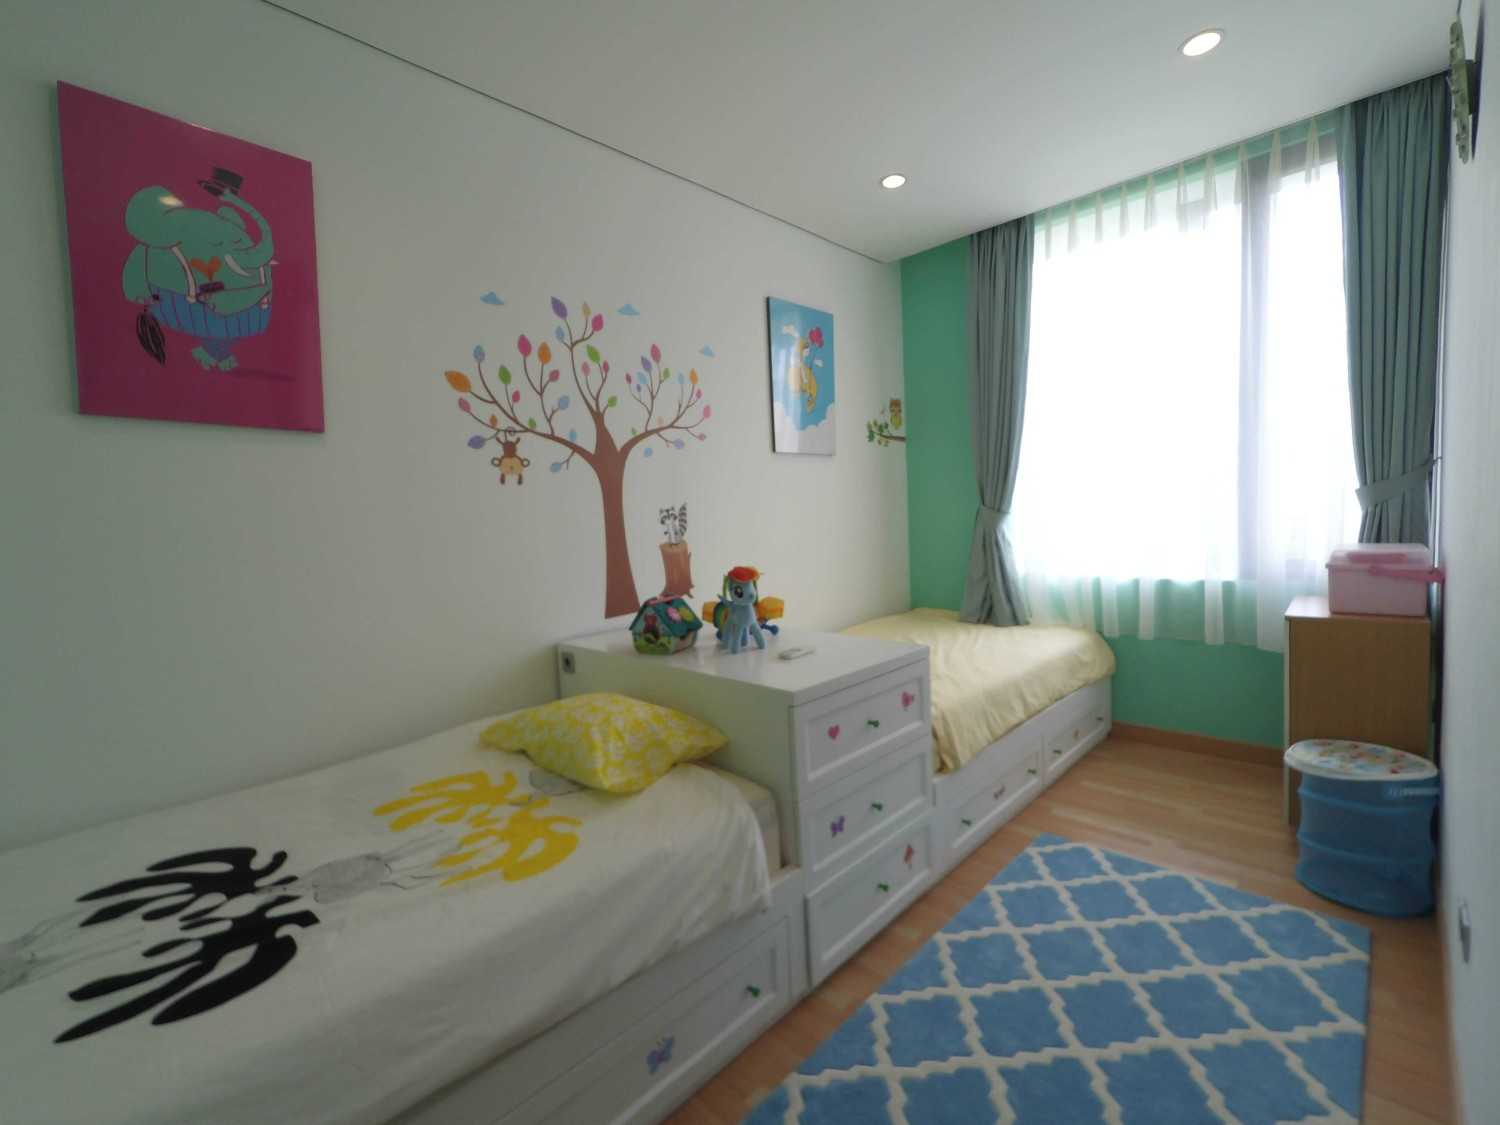 Dezan Studio Interior - Kids Room Pondok Indah Pondok Indah Bedroom  19417